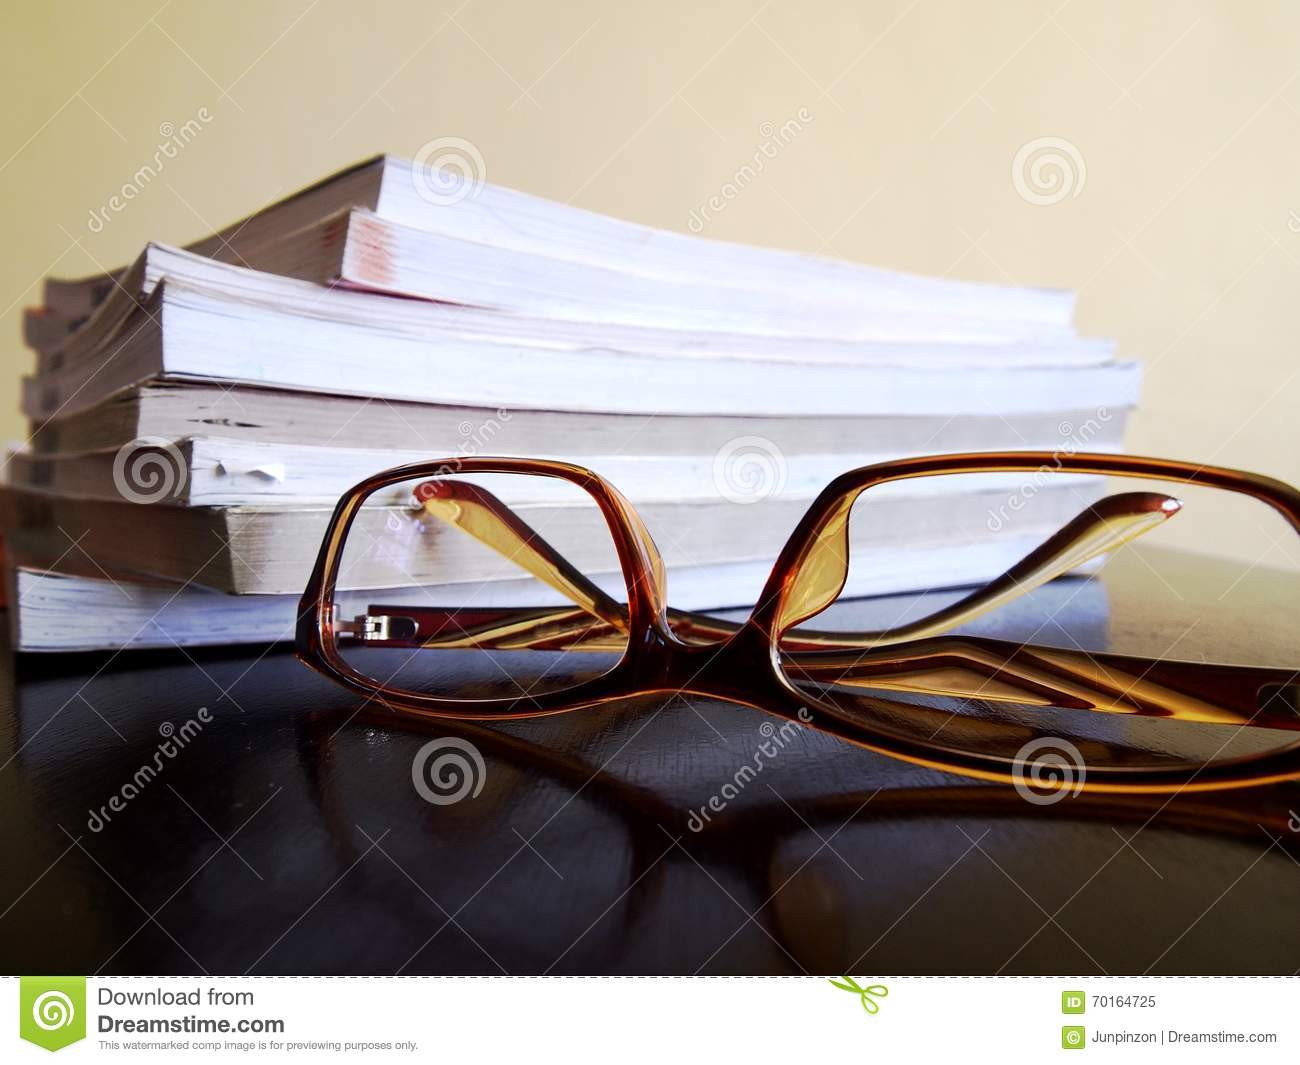 Pile of books and a pair of eyeglasses